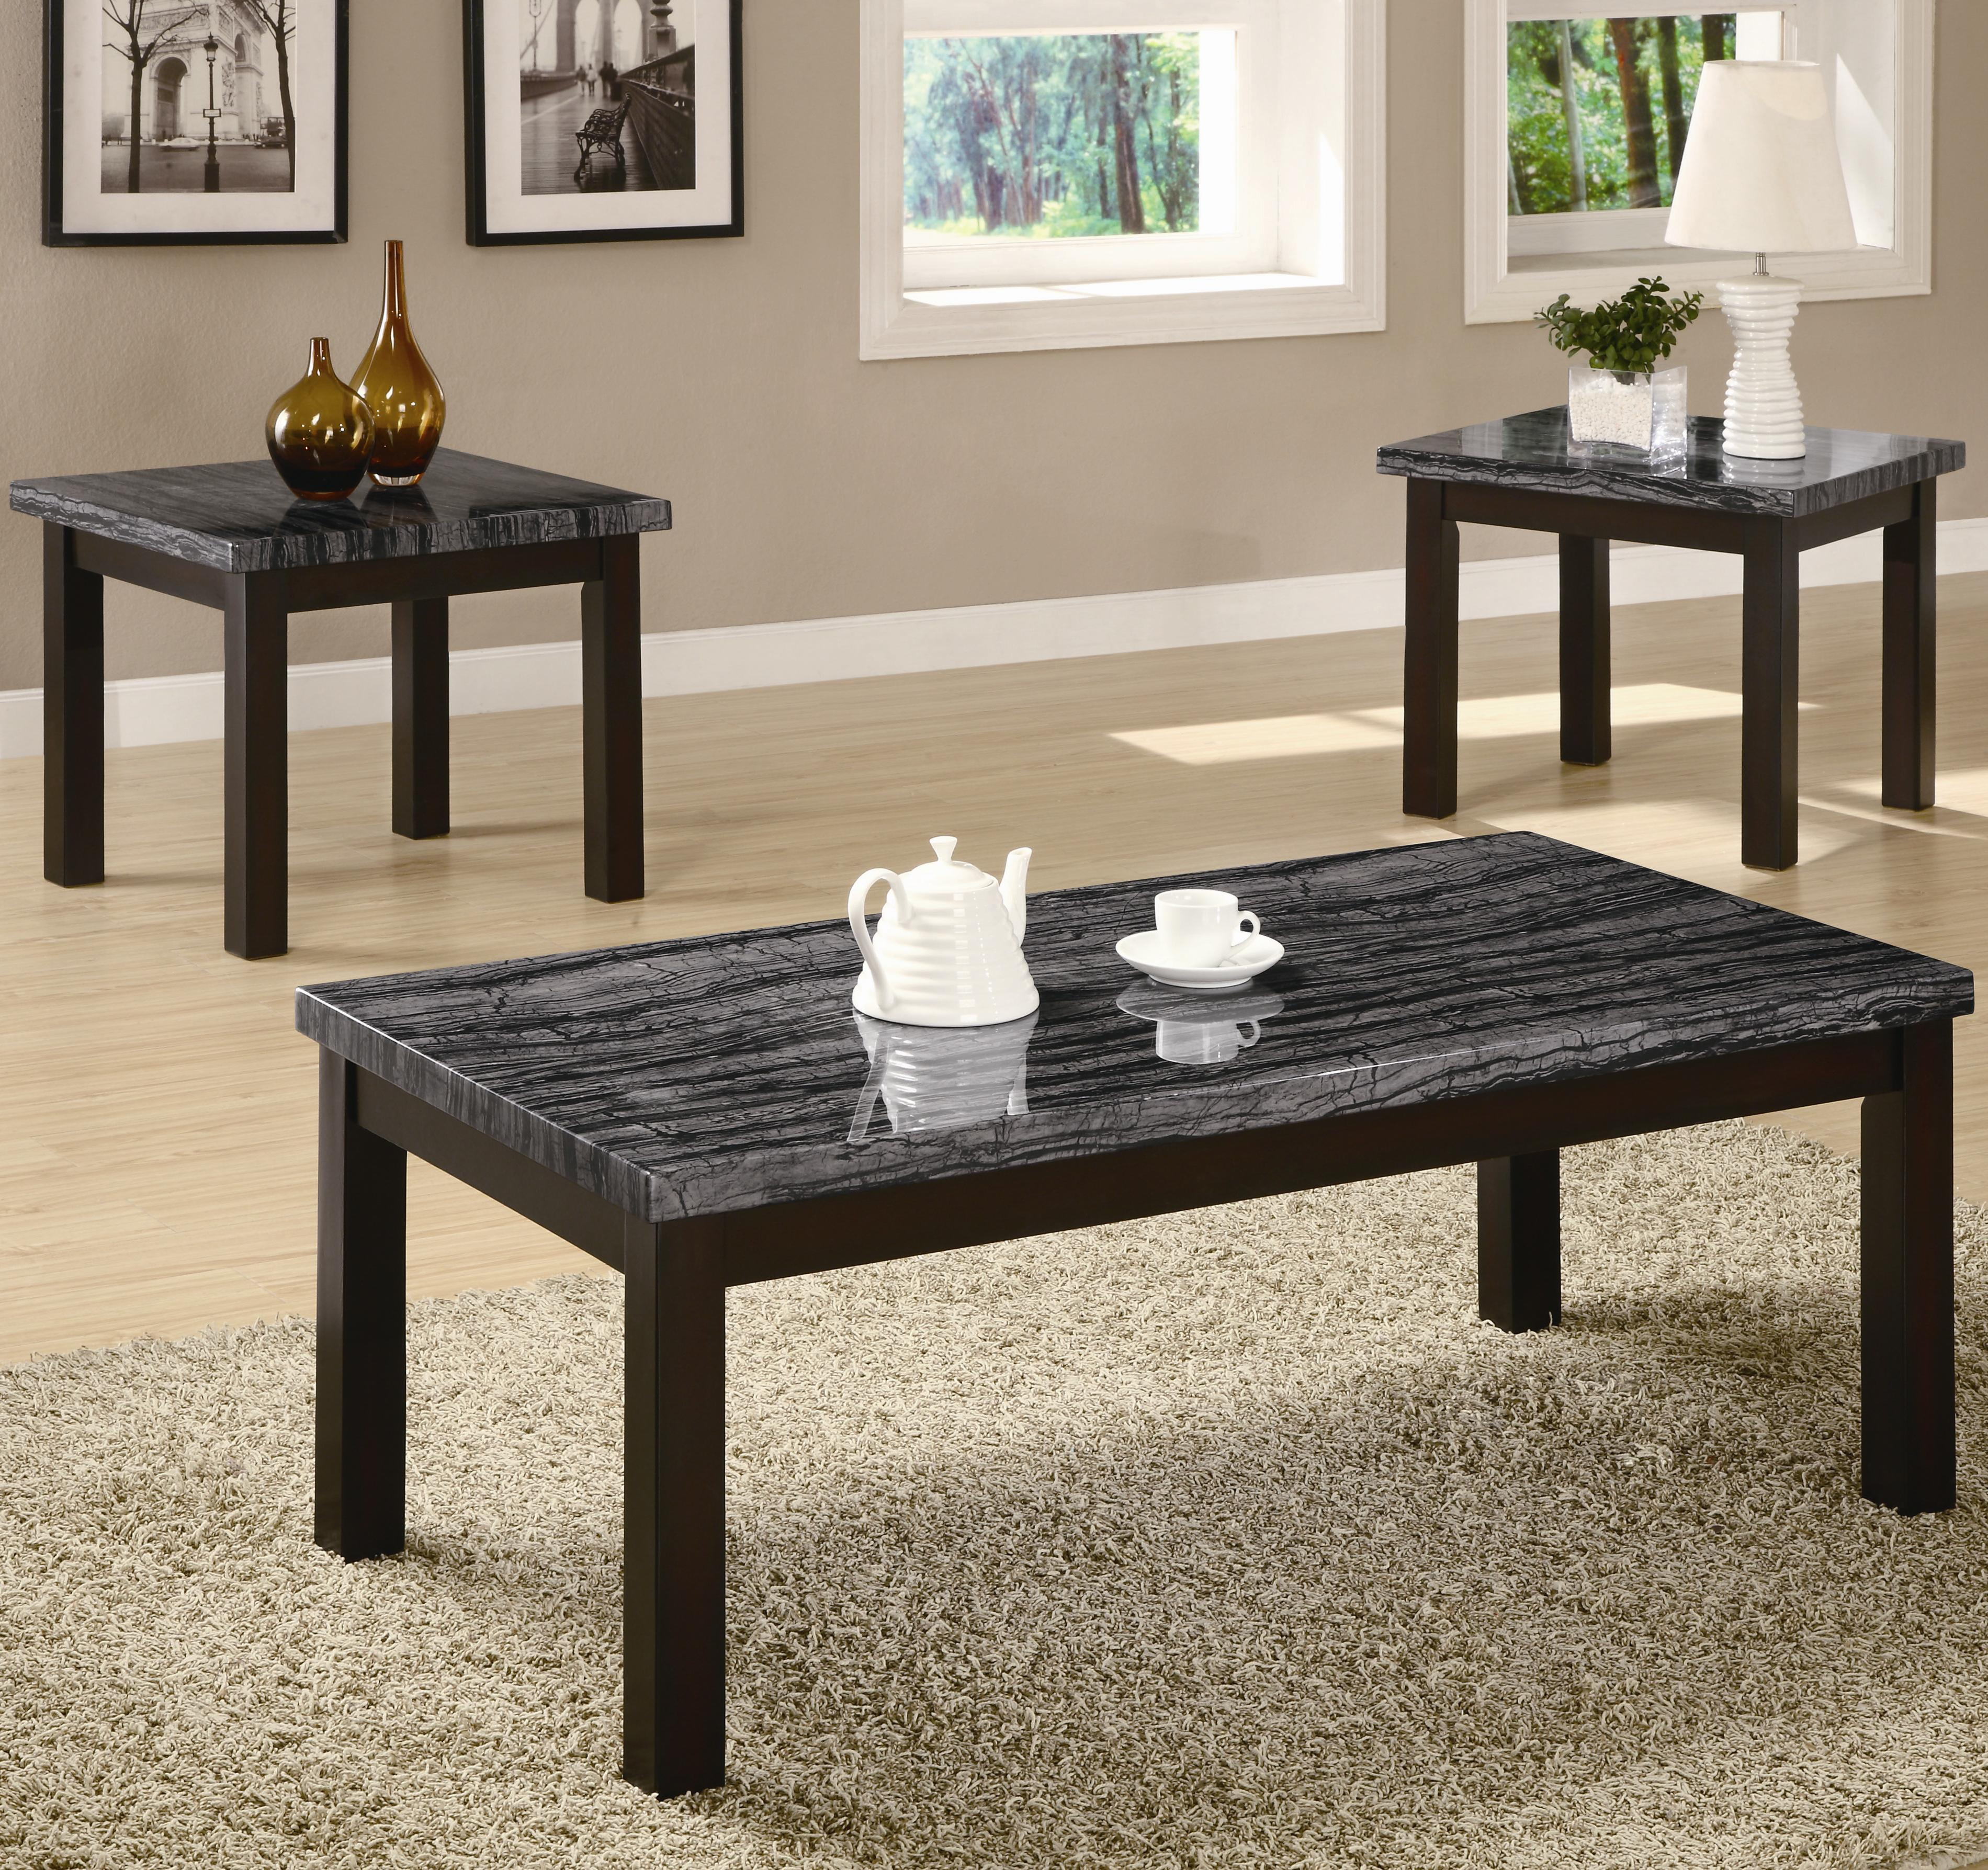 Coaster Occasional Table Sets Coffee Table and End Table Set - Coaster Fine Furniture & Coaster Occasional Table Sets Coffee Table and End Table Set ...